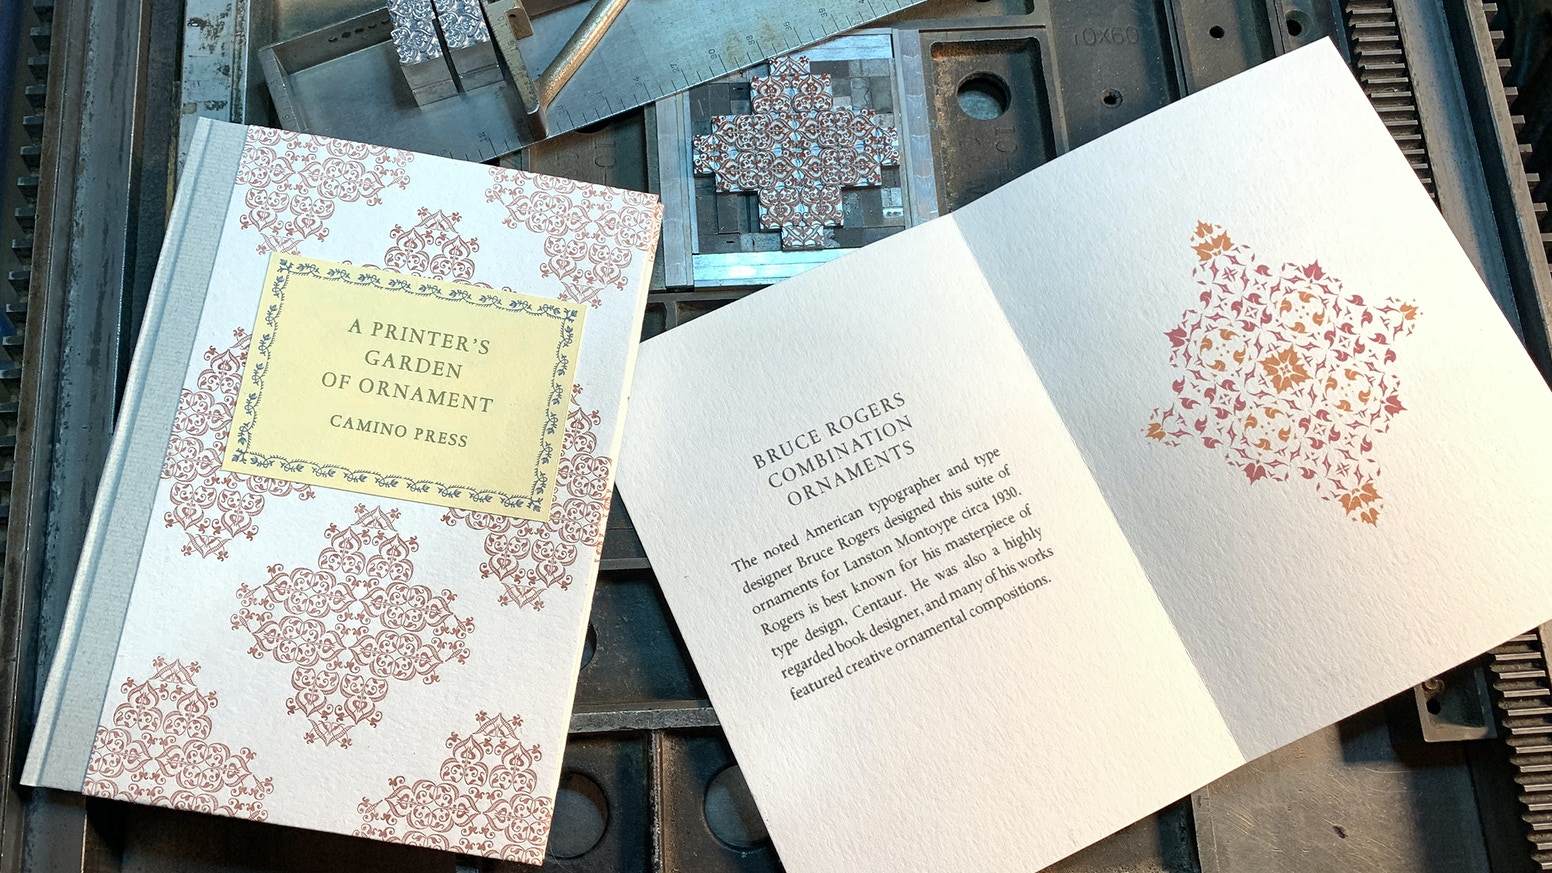 Typographic flowers, flourishes and fleurons: 100 books printed by letterpress from handset metal type ornaments